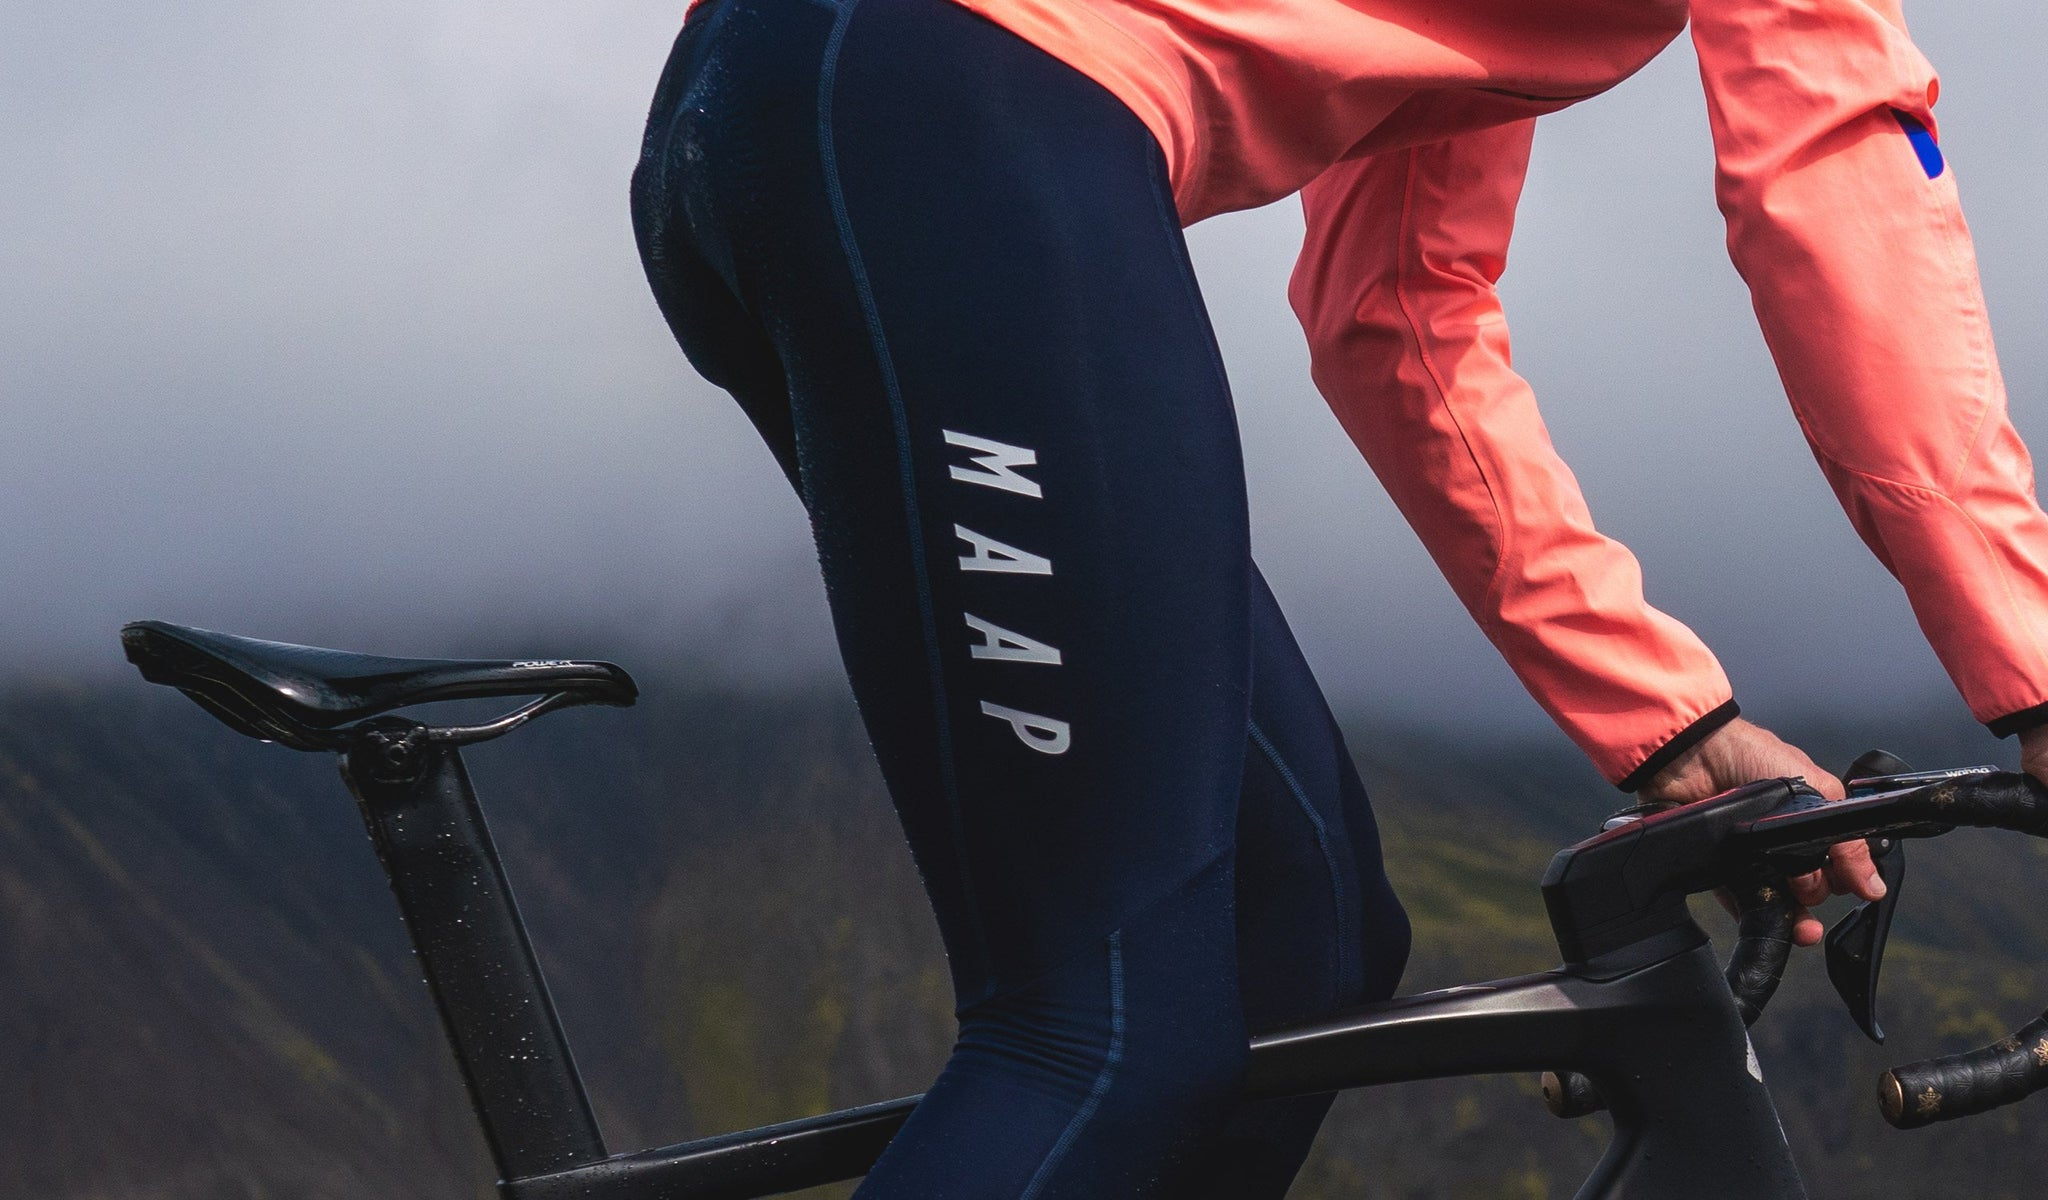 MAAP Team Thermal Cycling Bib Tights in Navy for riding in cold weather conditions.